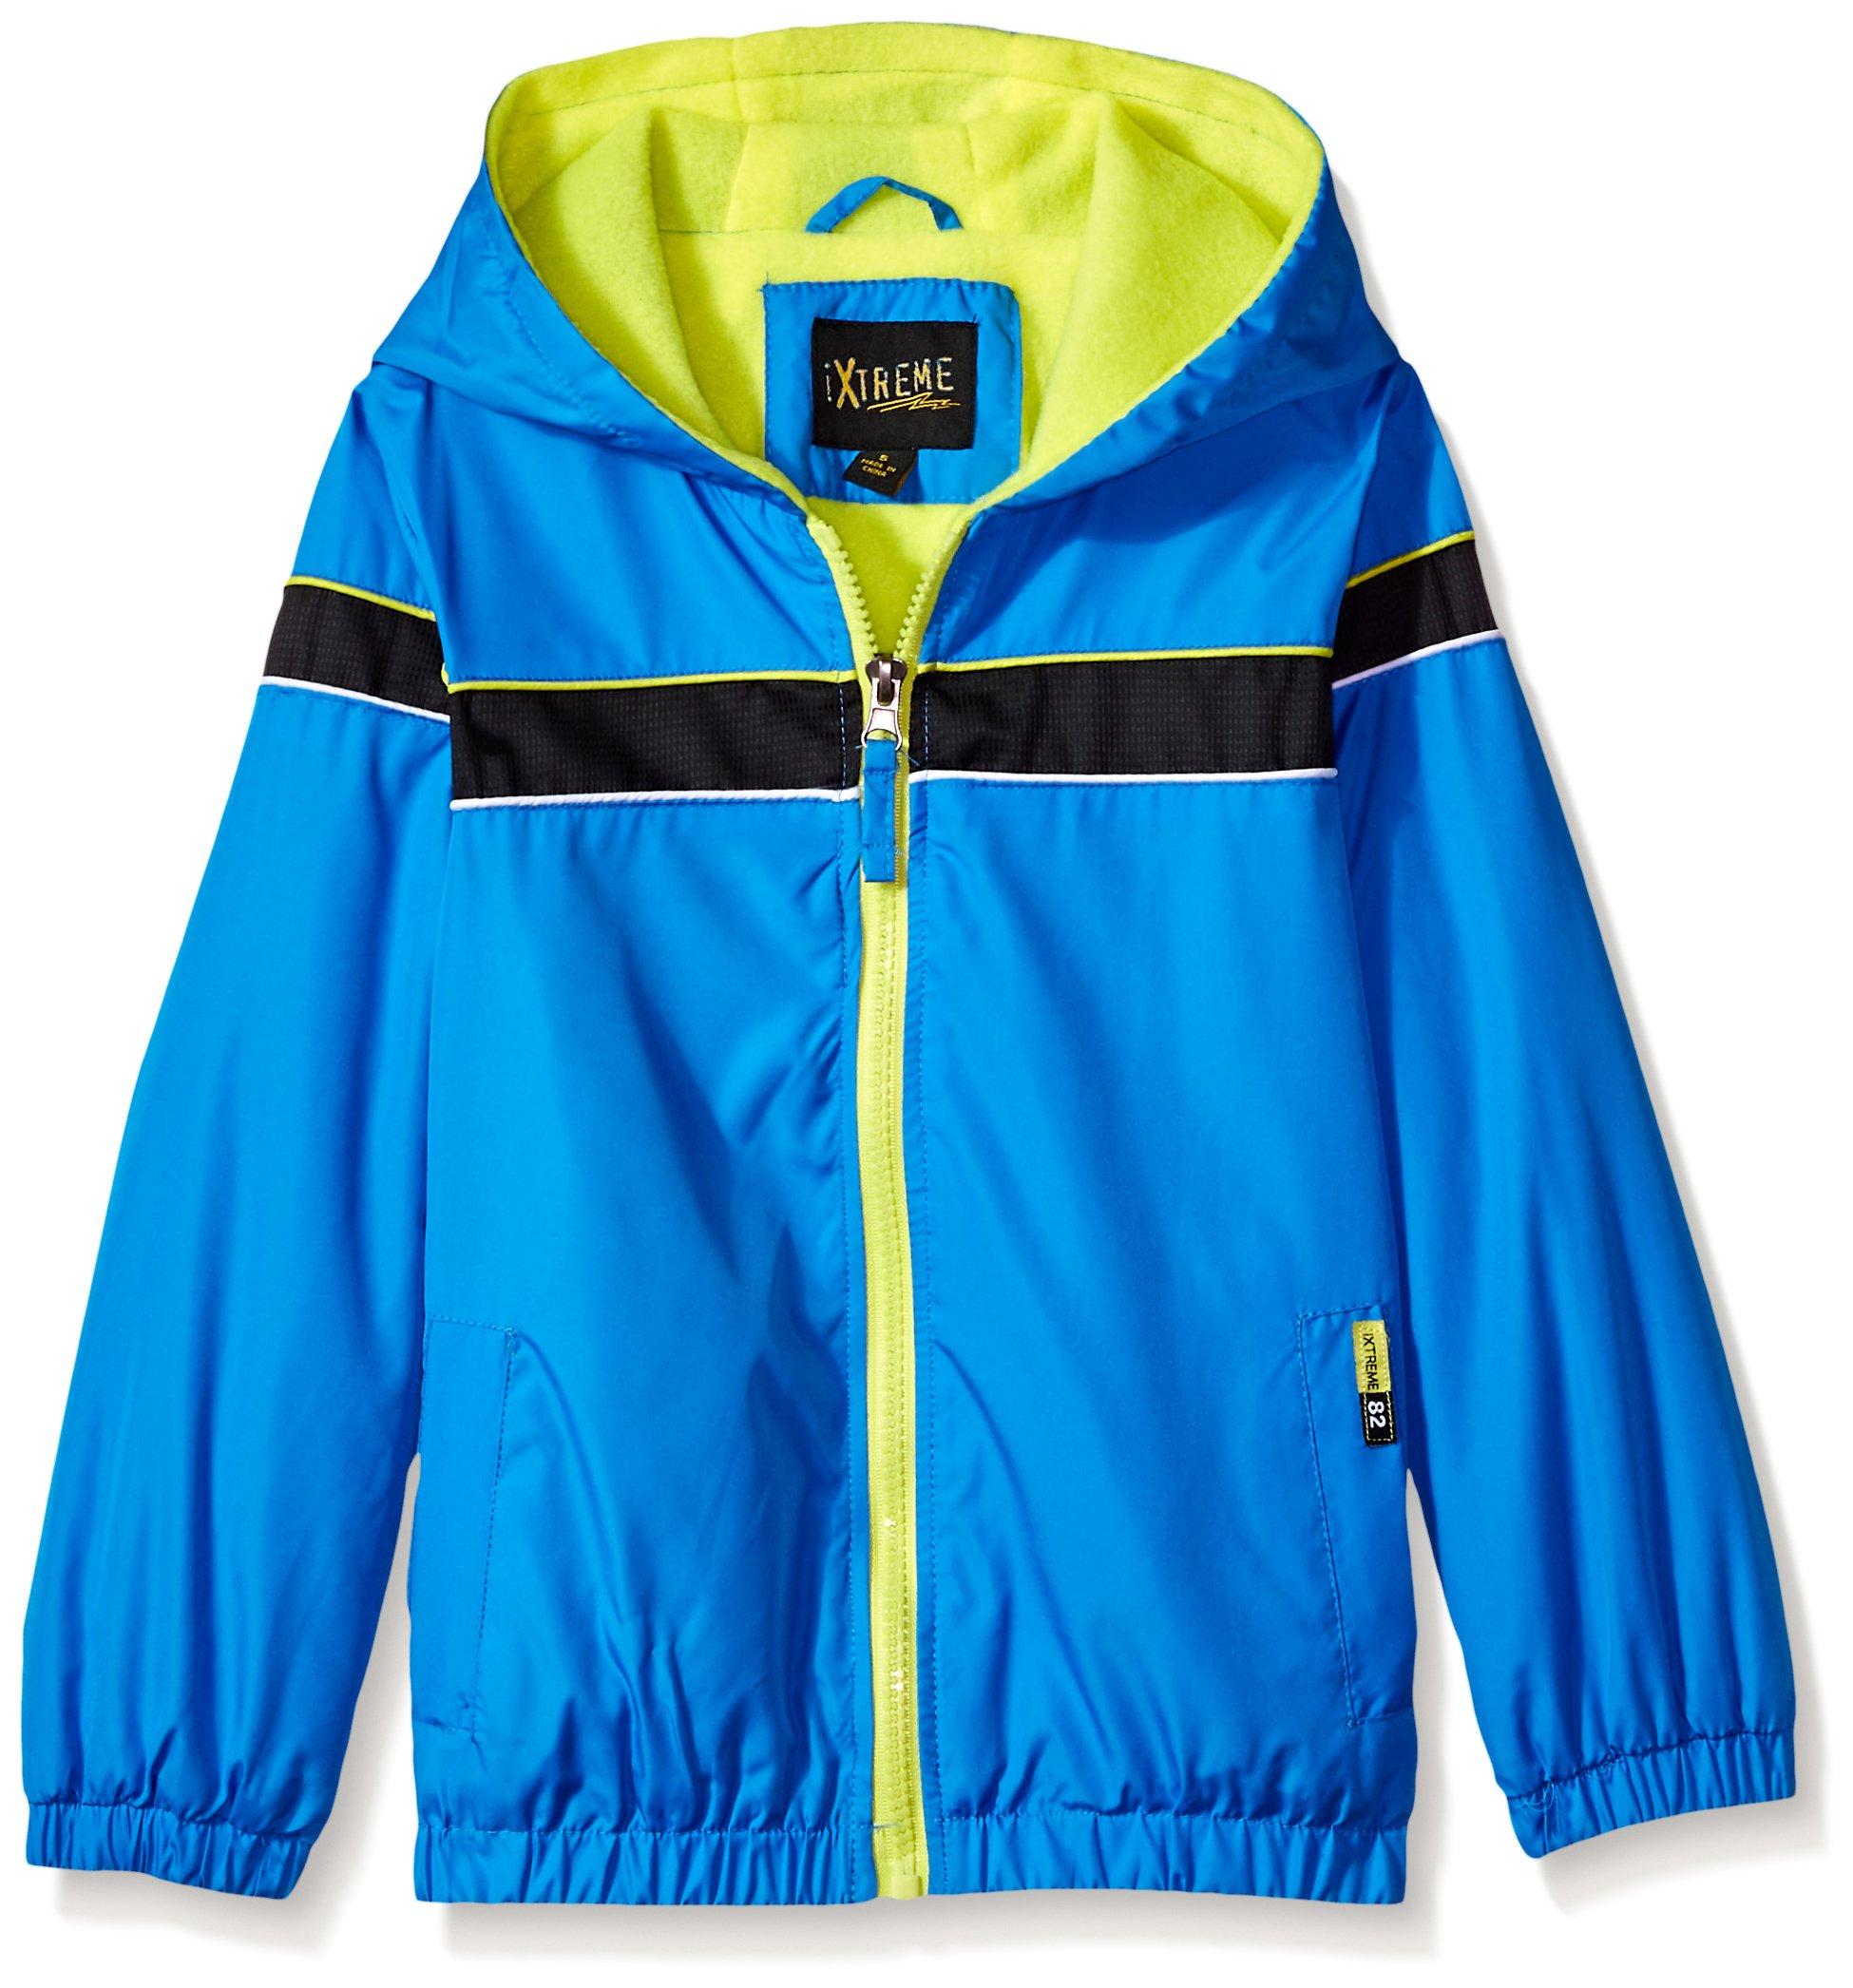 iXtreme Toddler Boys' Colorblock Jacket with Fleece Lining, Blue, 2T